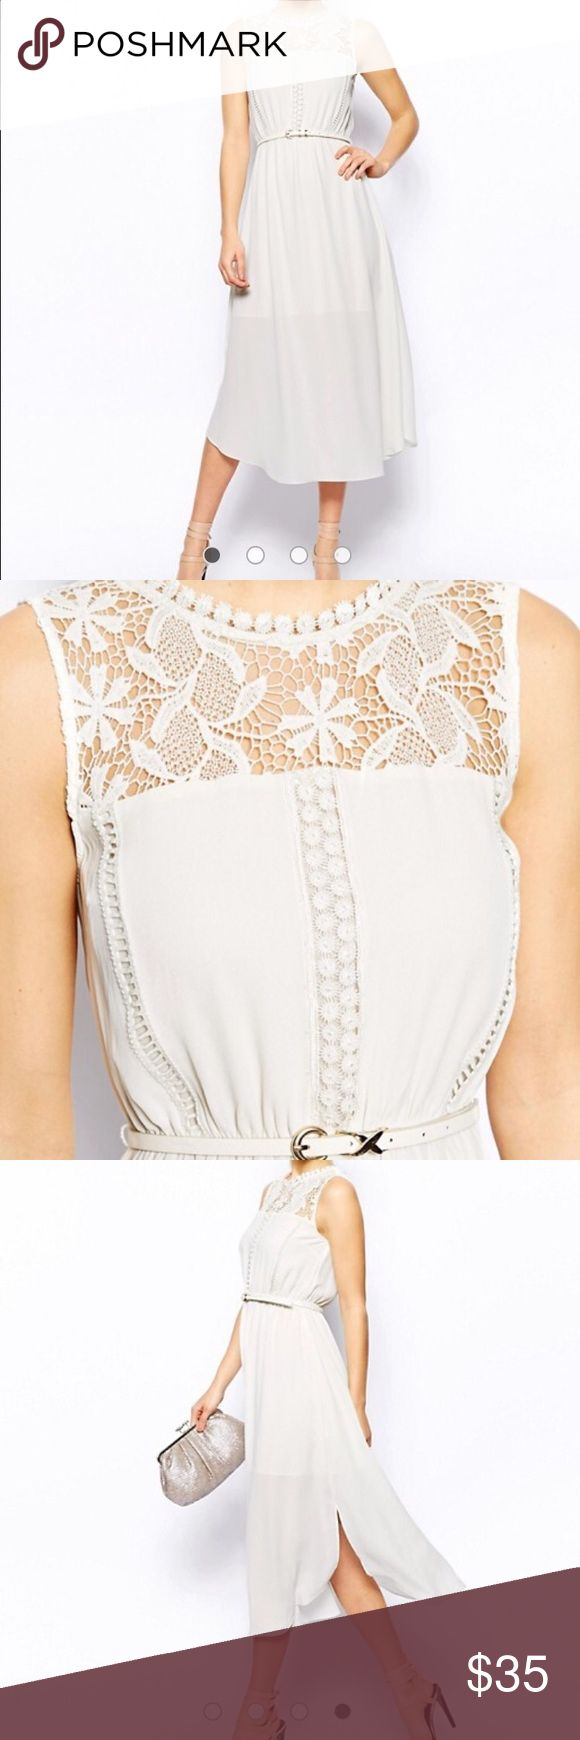 Asos Oasis Column Lace Midi Dress - Ivory Oasis Column Lace Midi Dress - Ivory. Lined to fingertip length. Belt included. Like new, Only worn once! From a smoke free home! Asos Dresses Midi